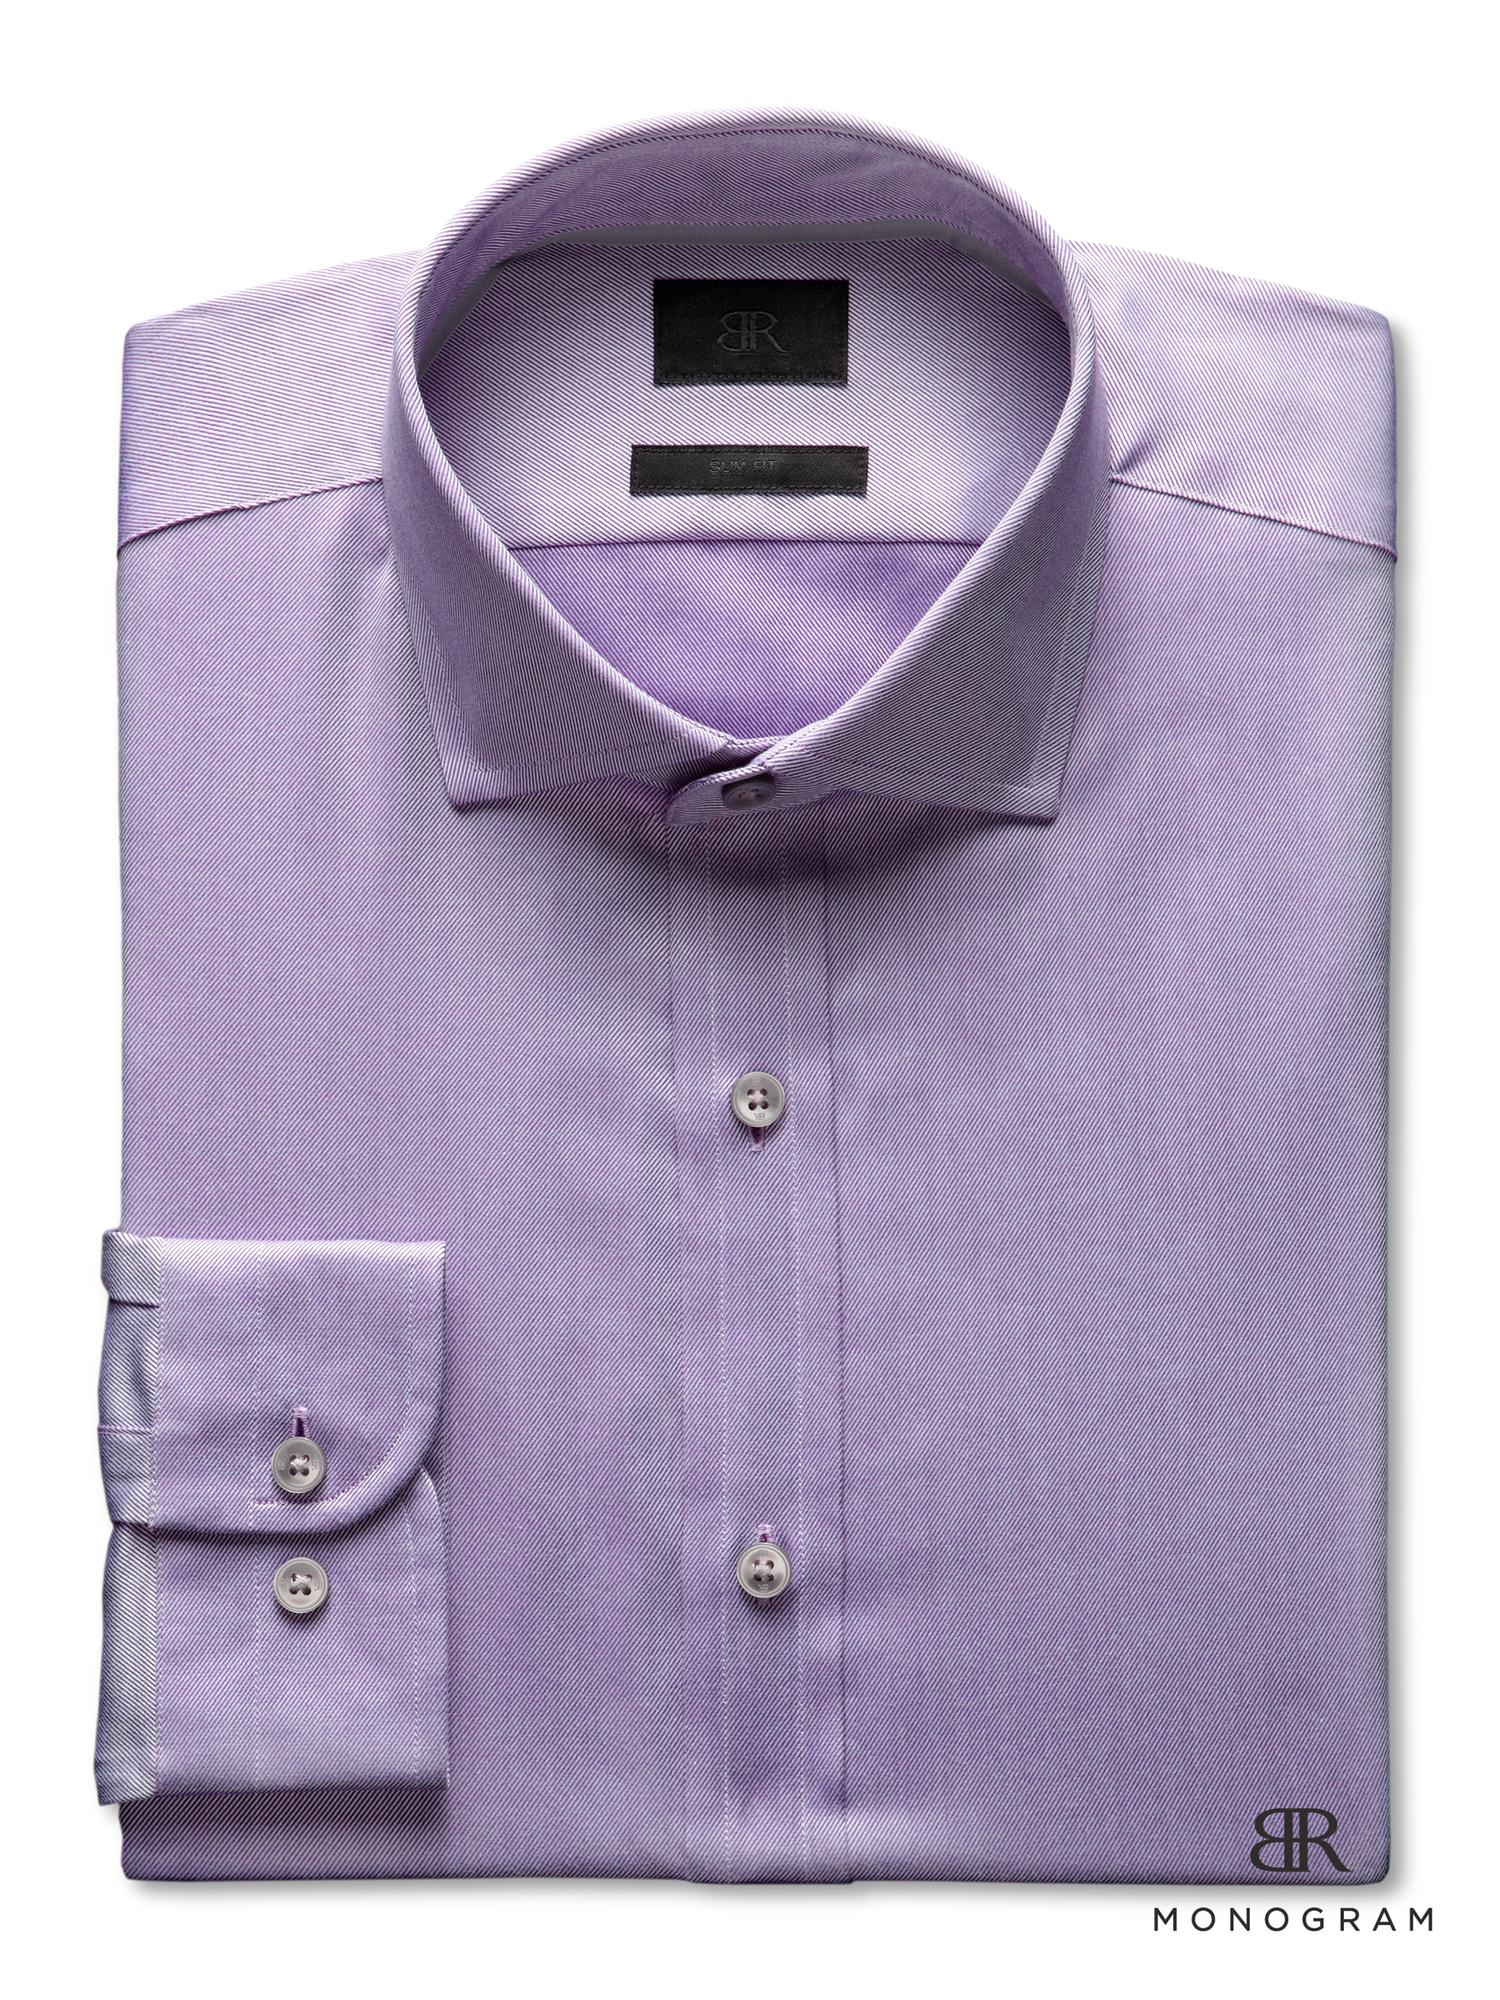 Banana republic br monogram dress shirt in purple for men for Initials on dress shirts